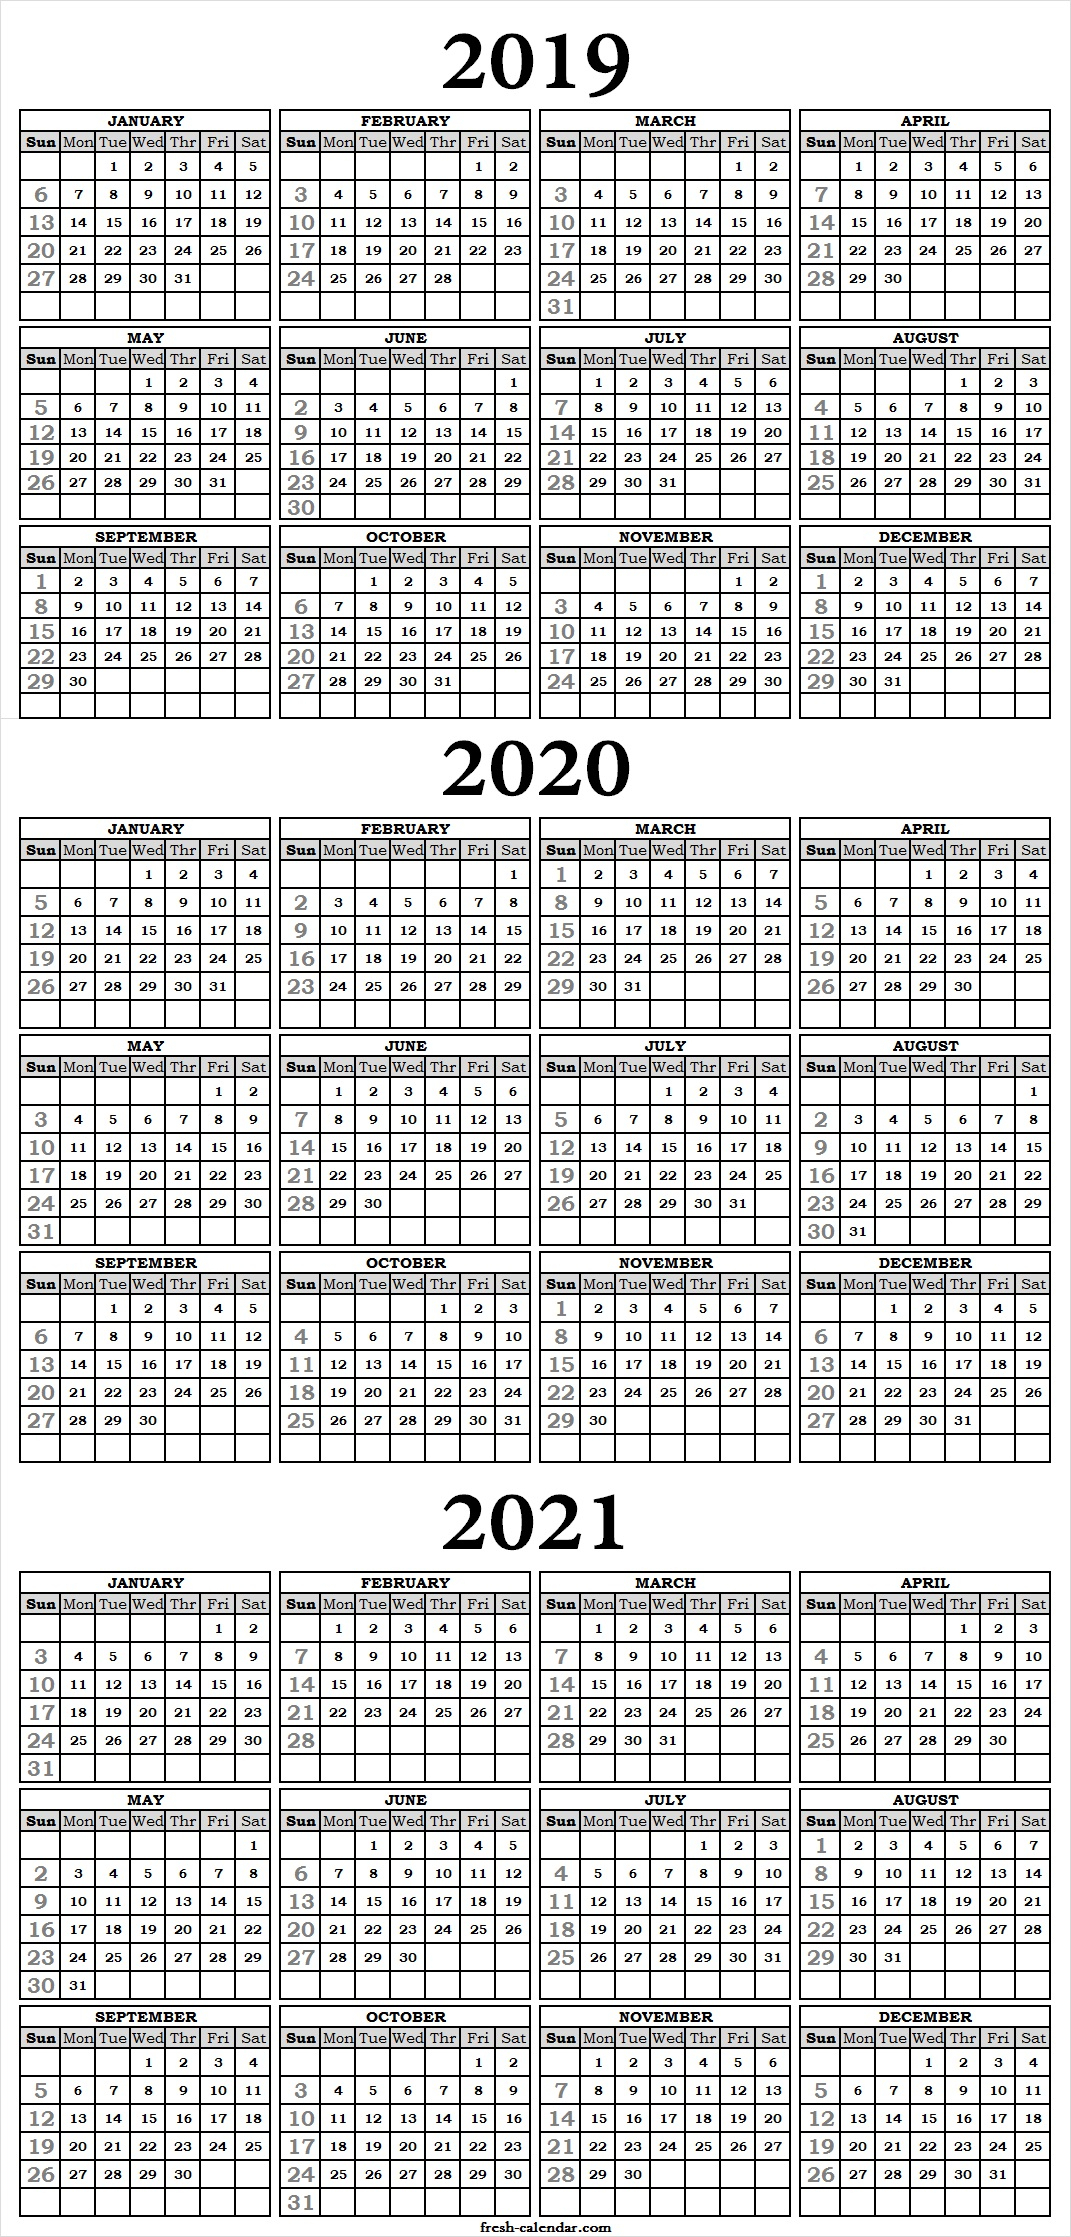 Three Yearly Calendar 2019 2020 2021 Printable Free | Blank inside 3 Year Calendar 2020 To 2021 Printable